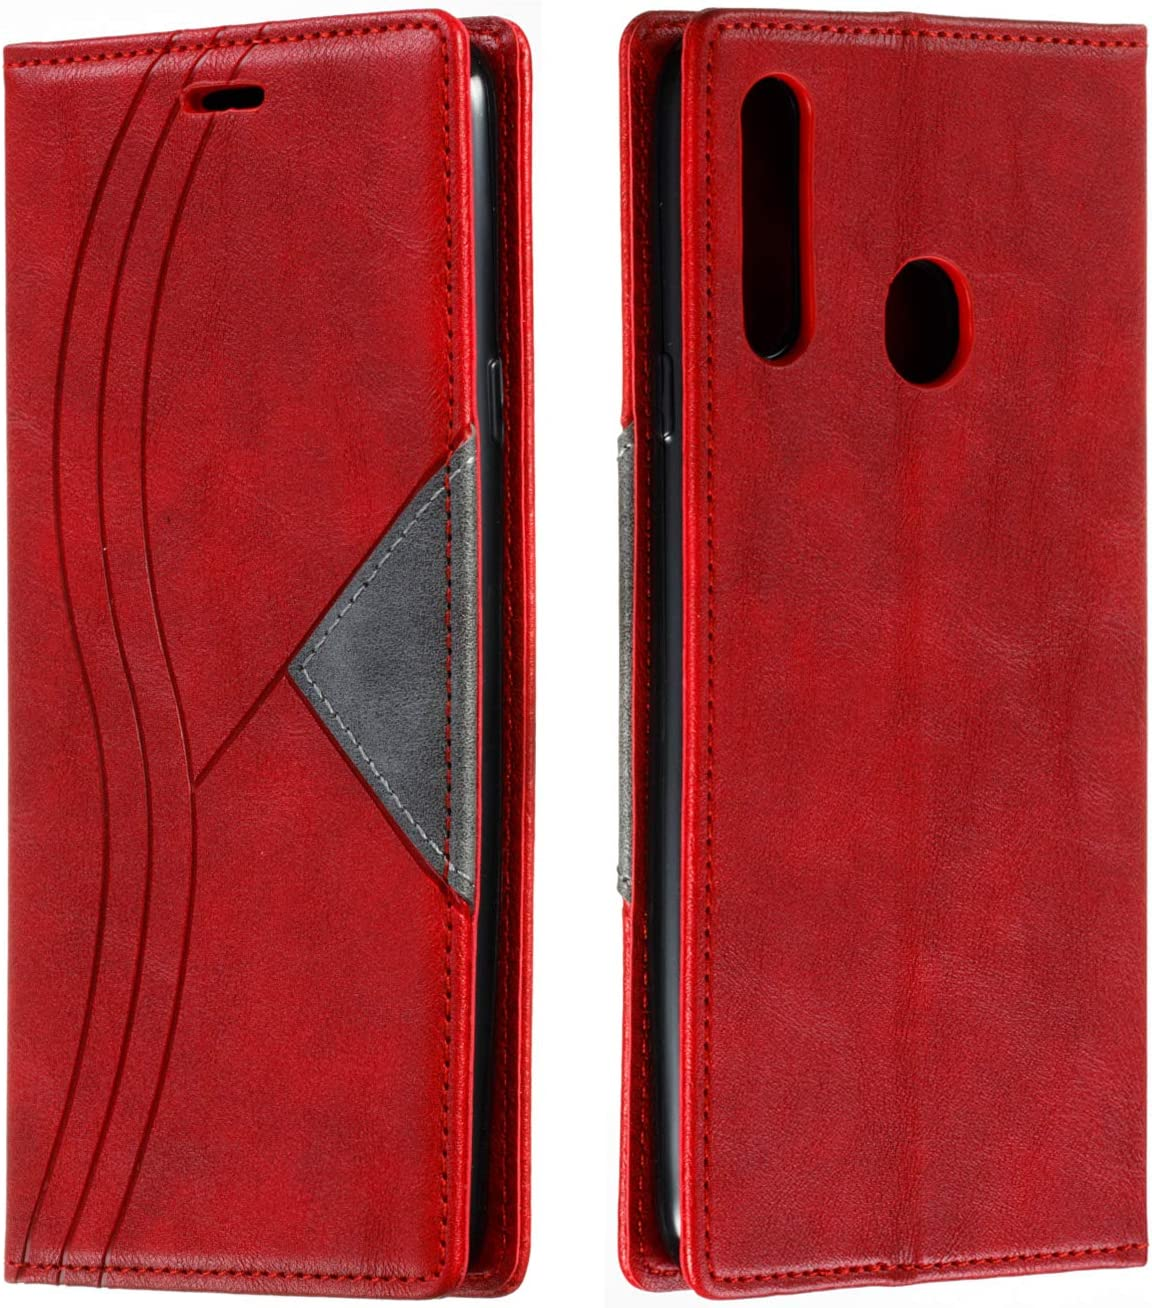 Snow Color Leather Wallet Case for Galaxy A20S with Stand Feature Shockproof Flip Card Holder Case Cover for Samsung Galaxy A20S - COYKB040086 Red